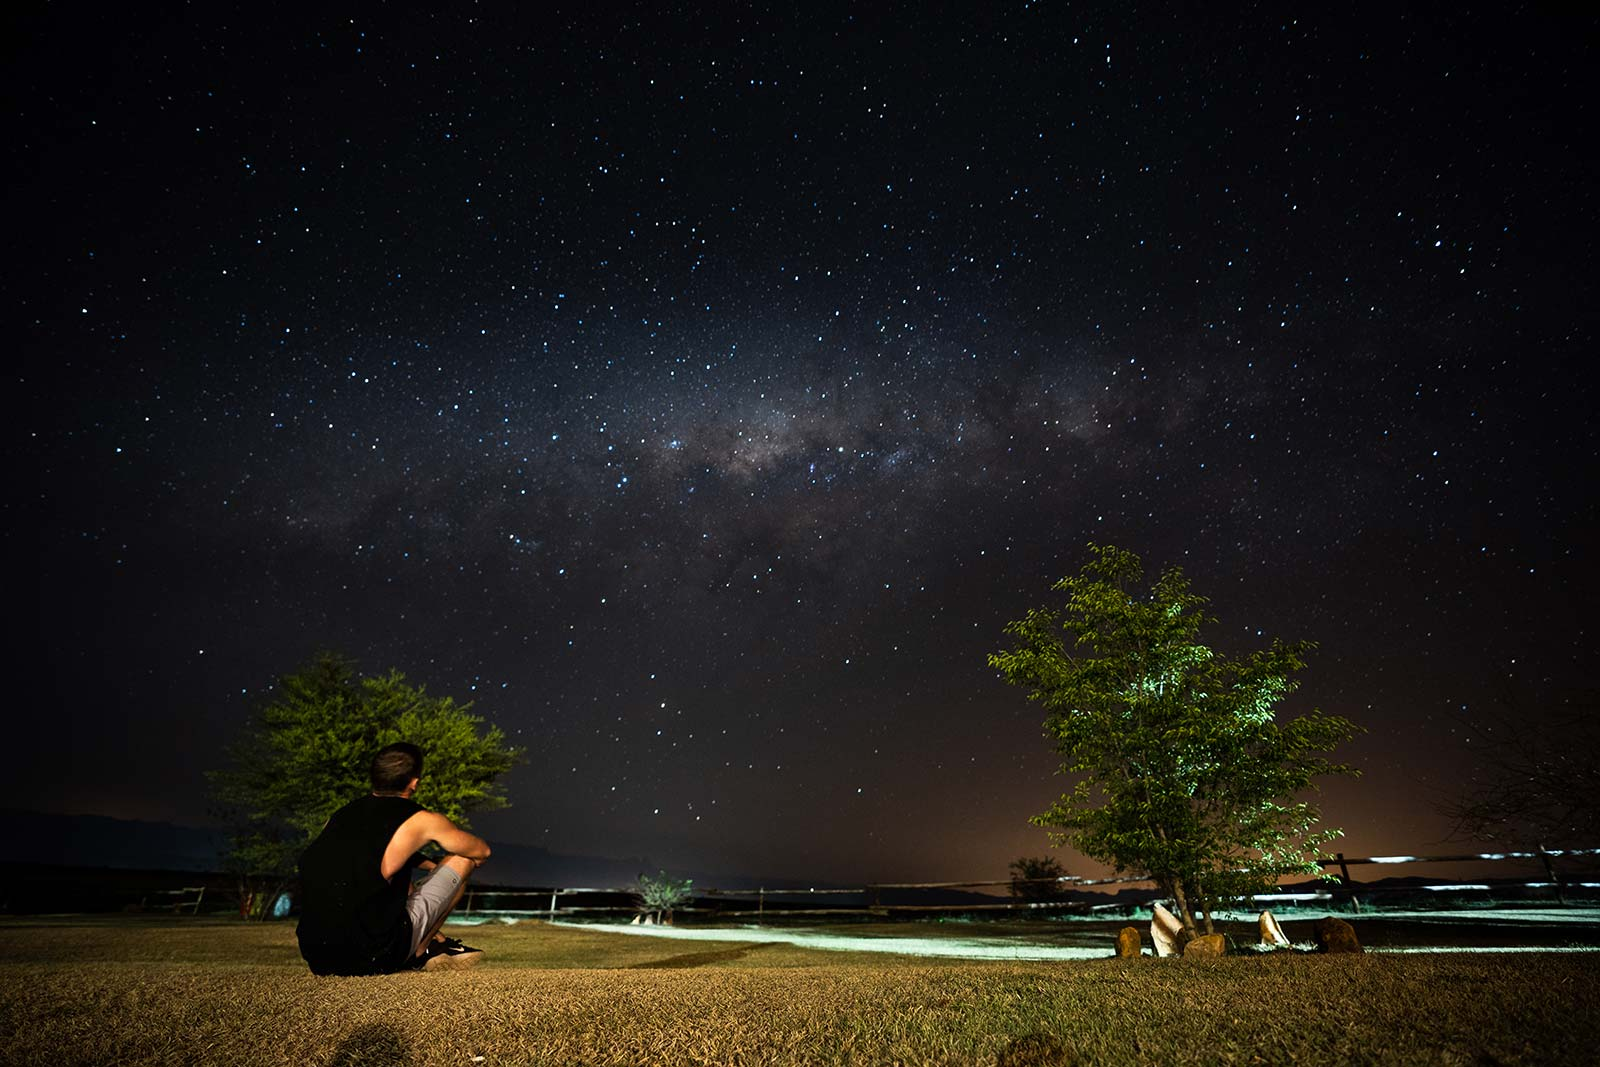 David Simpson viewing the night sky in Lesotho, Africa. The greatest hike on Earth?